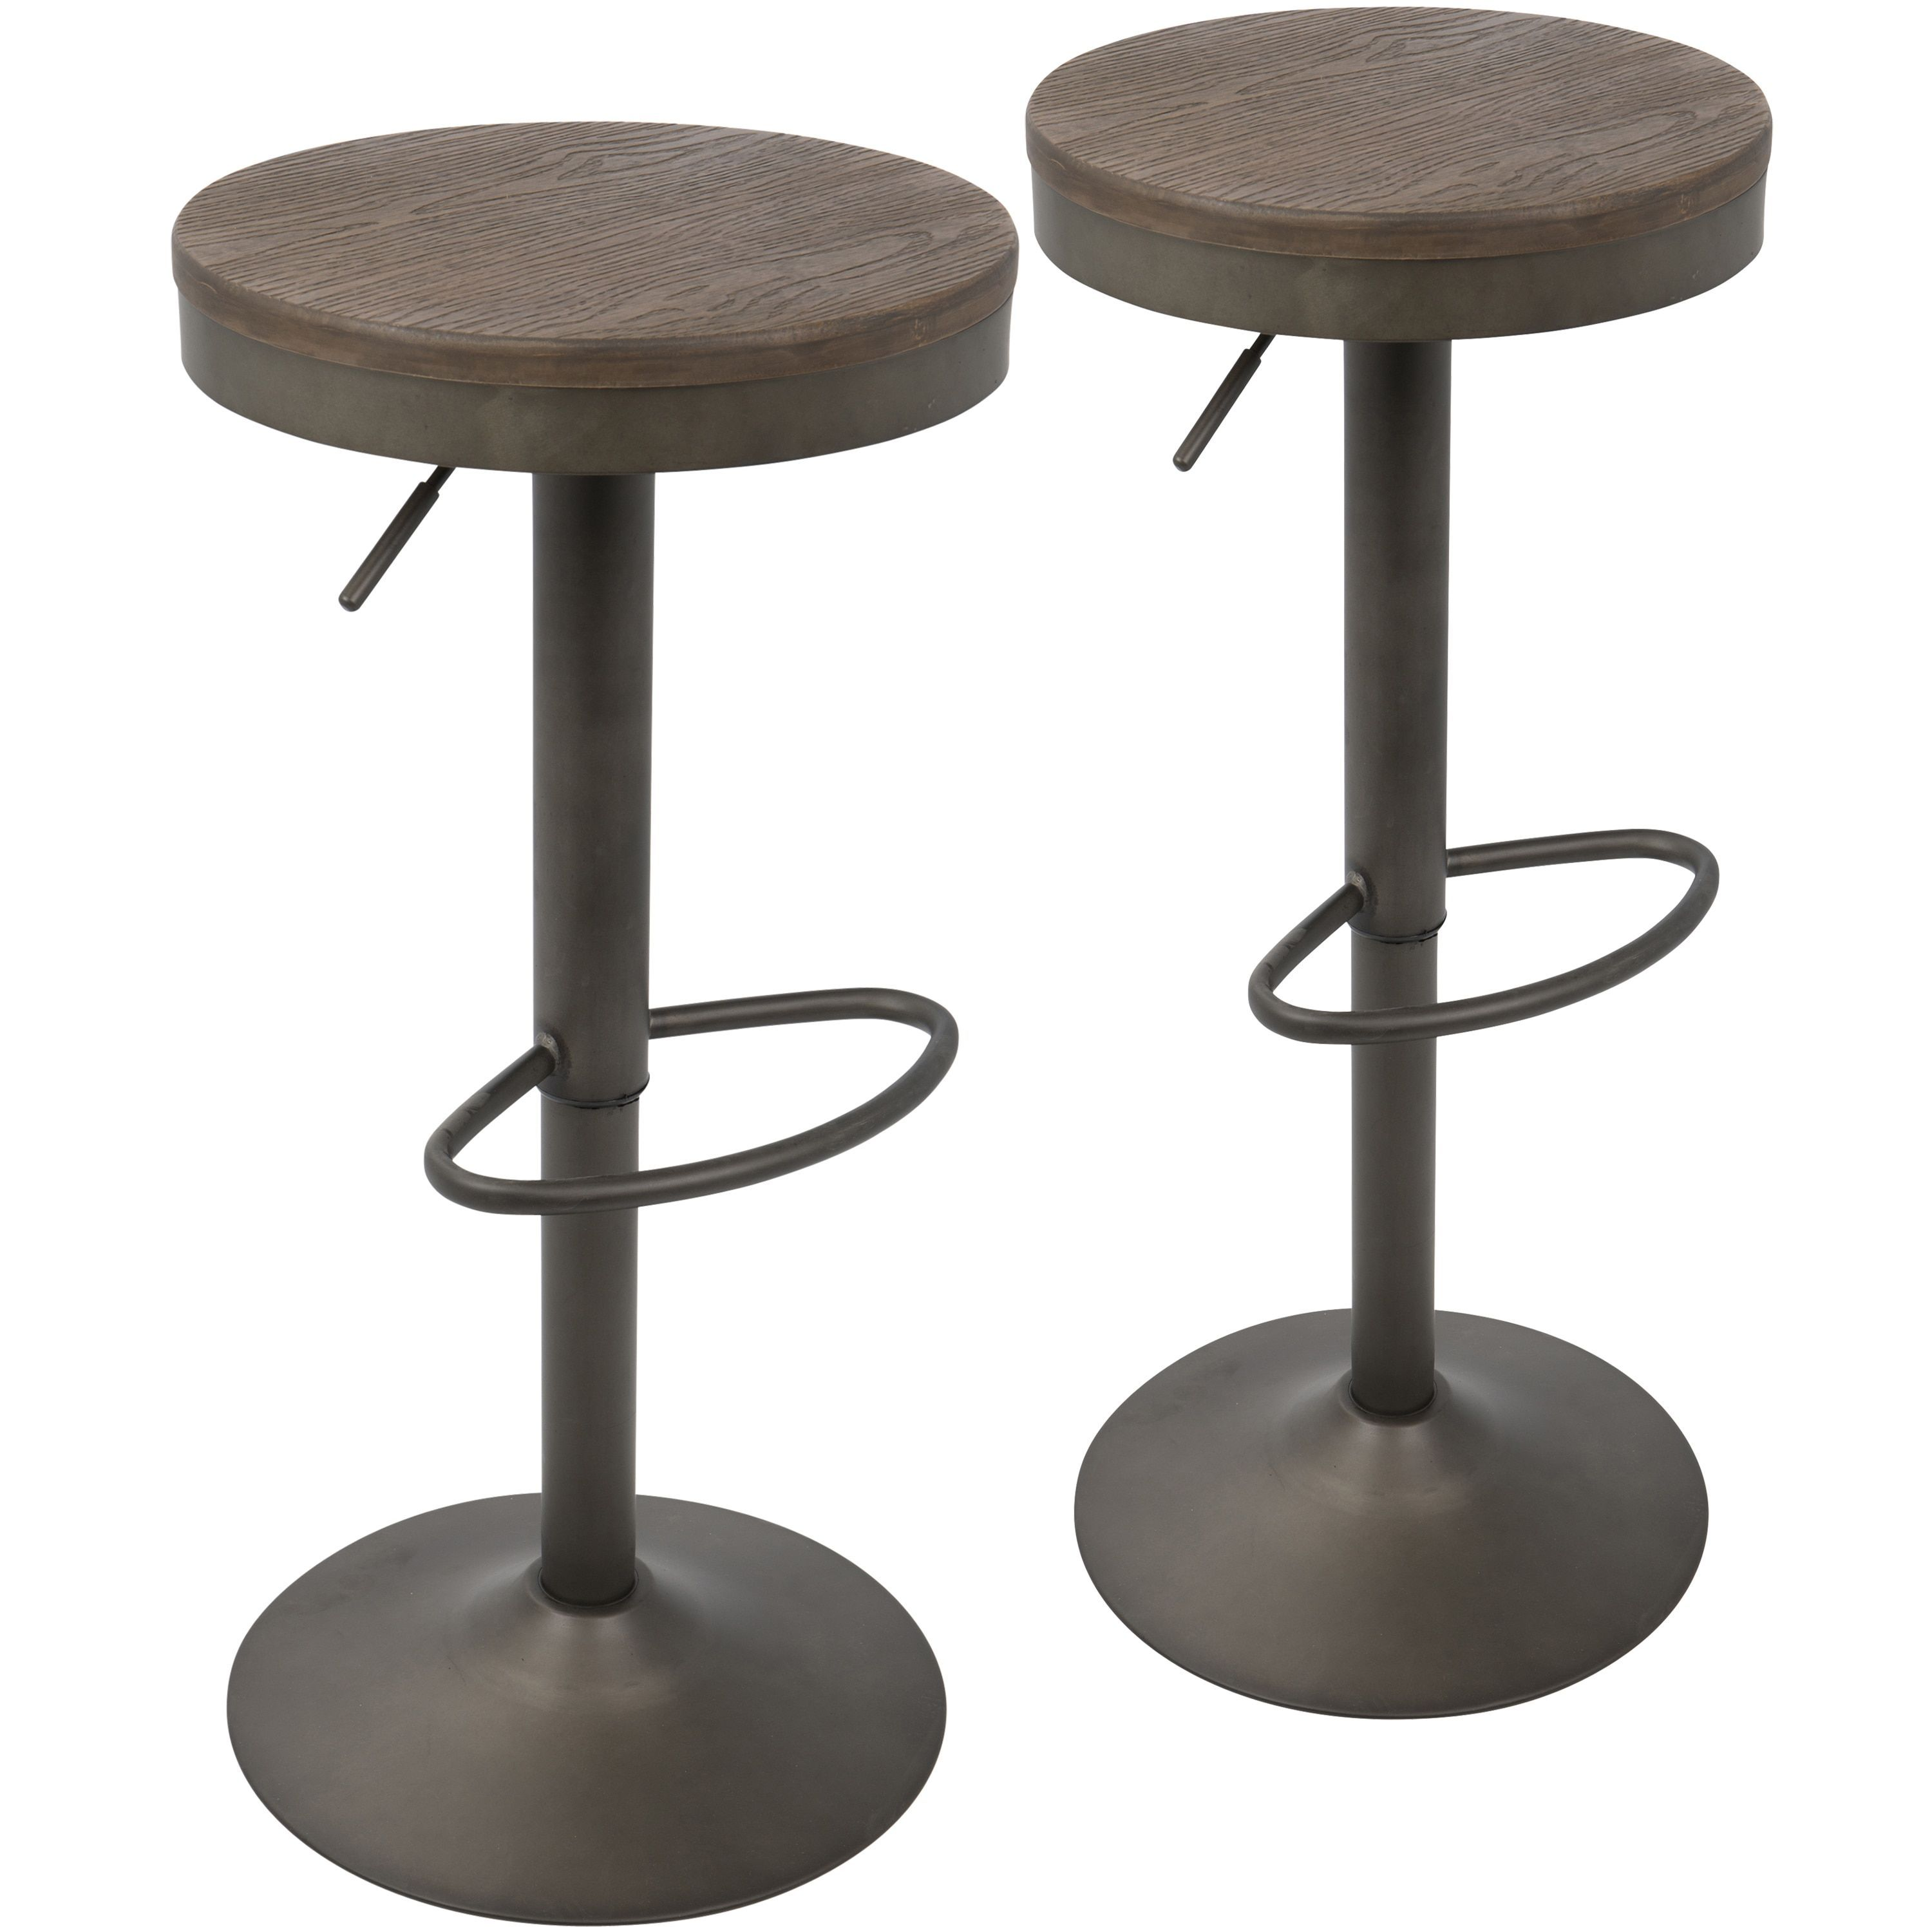 Pleasing Lumisource Dakota Industrial Adjustable Barstool Counter Onthecornerstone Fun Painted Chair Ideas Images Onthecornerstoneorg